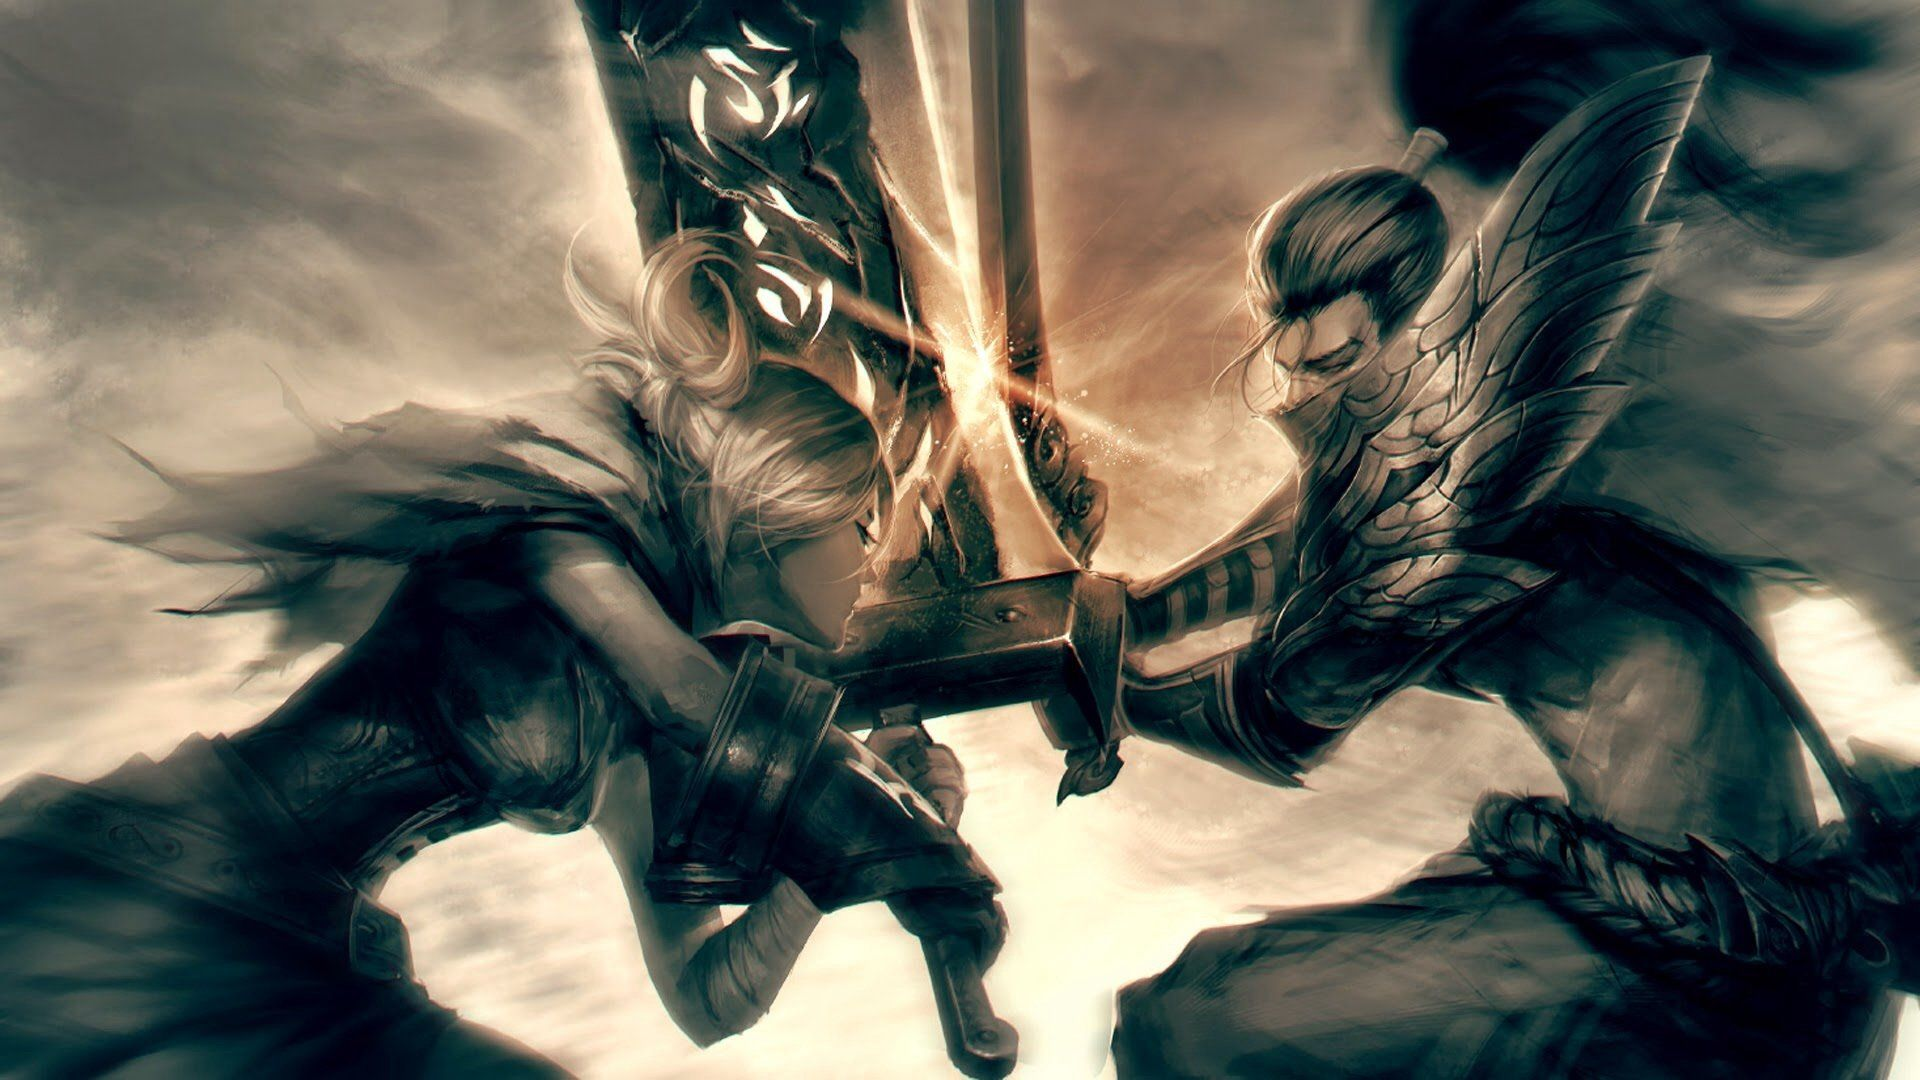 1920x1080 3528 League Of Legends HD Wallpapers | Background Images - Wallpaper ...